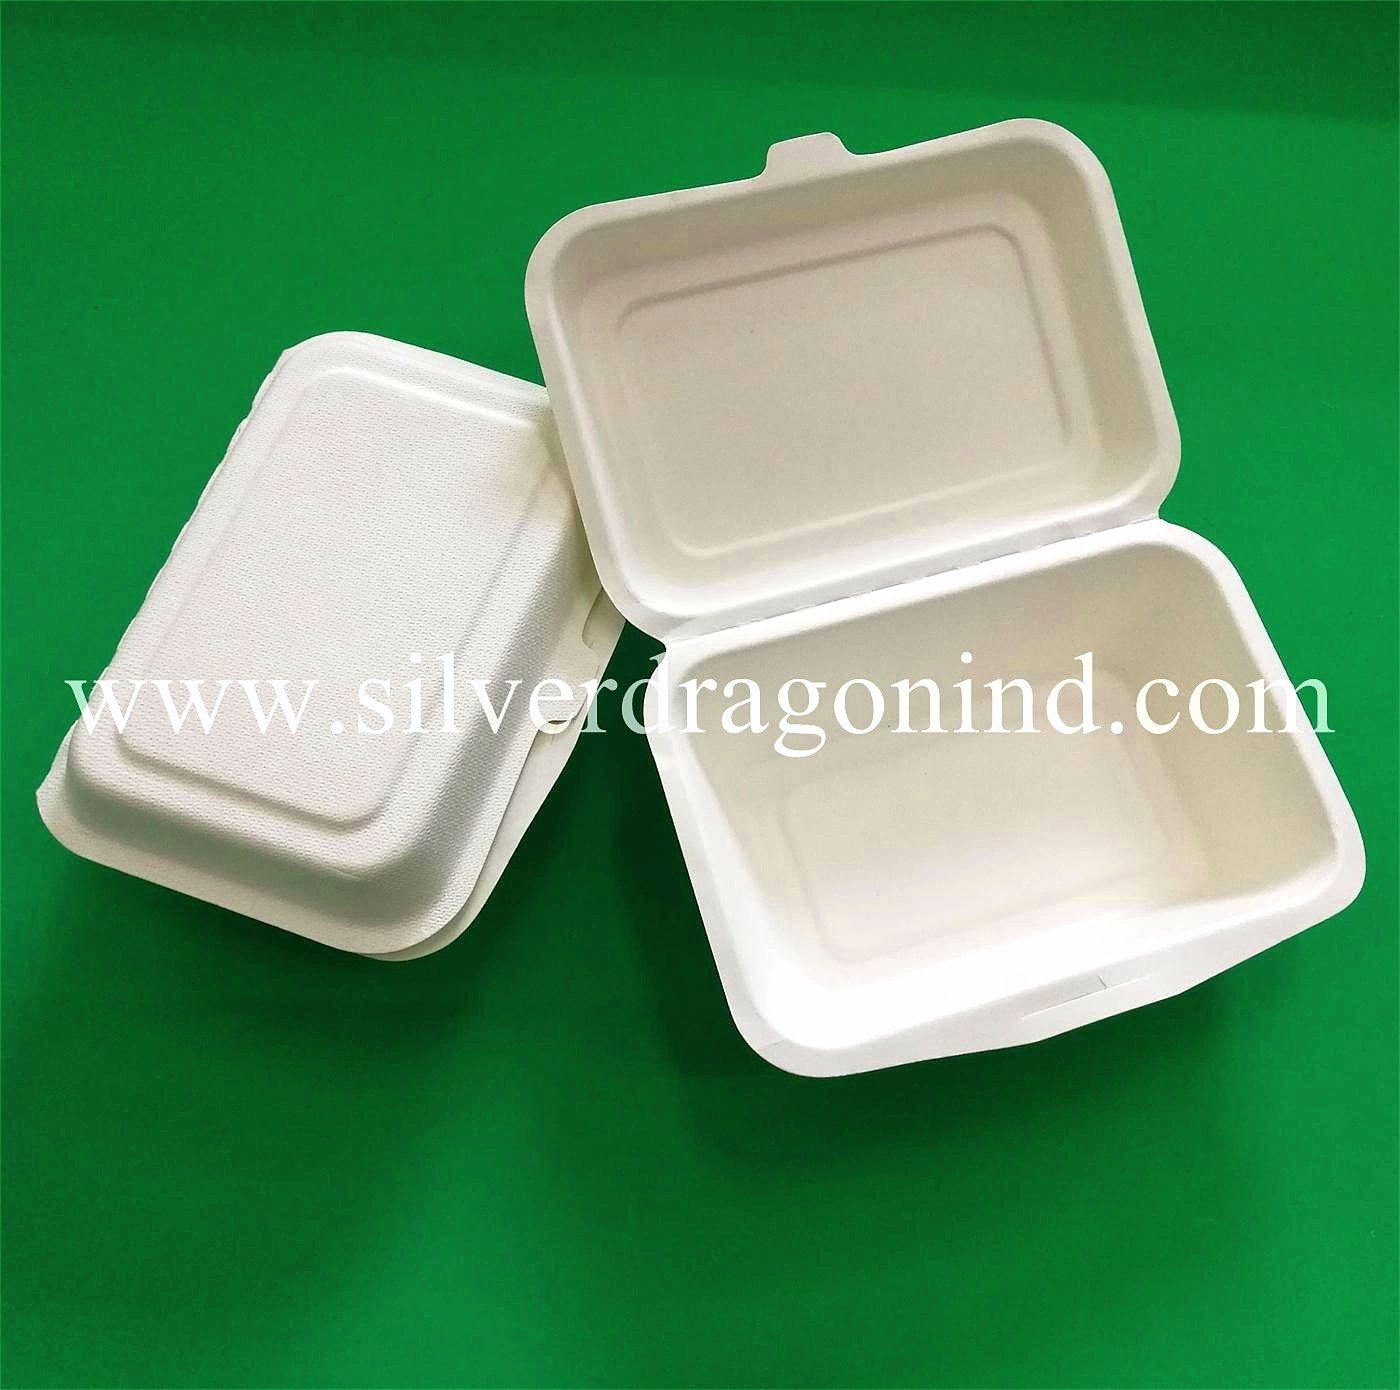 Compostable Biodegradable Tableware Sugarcane Bagasse Paper Clamshell